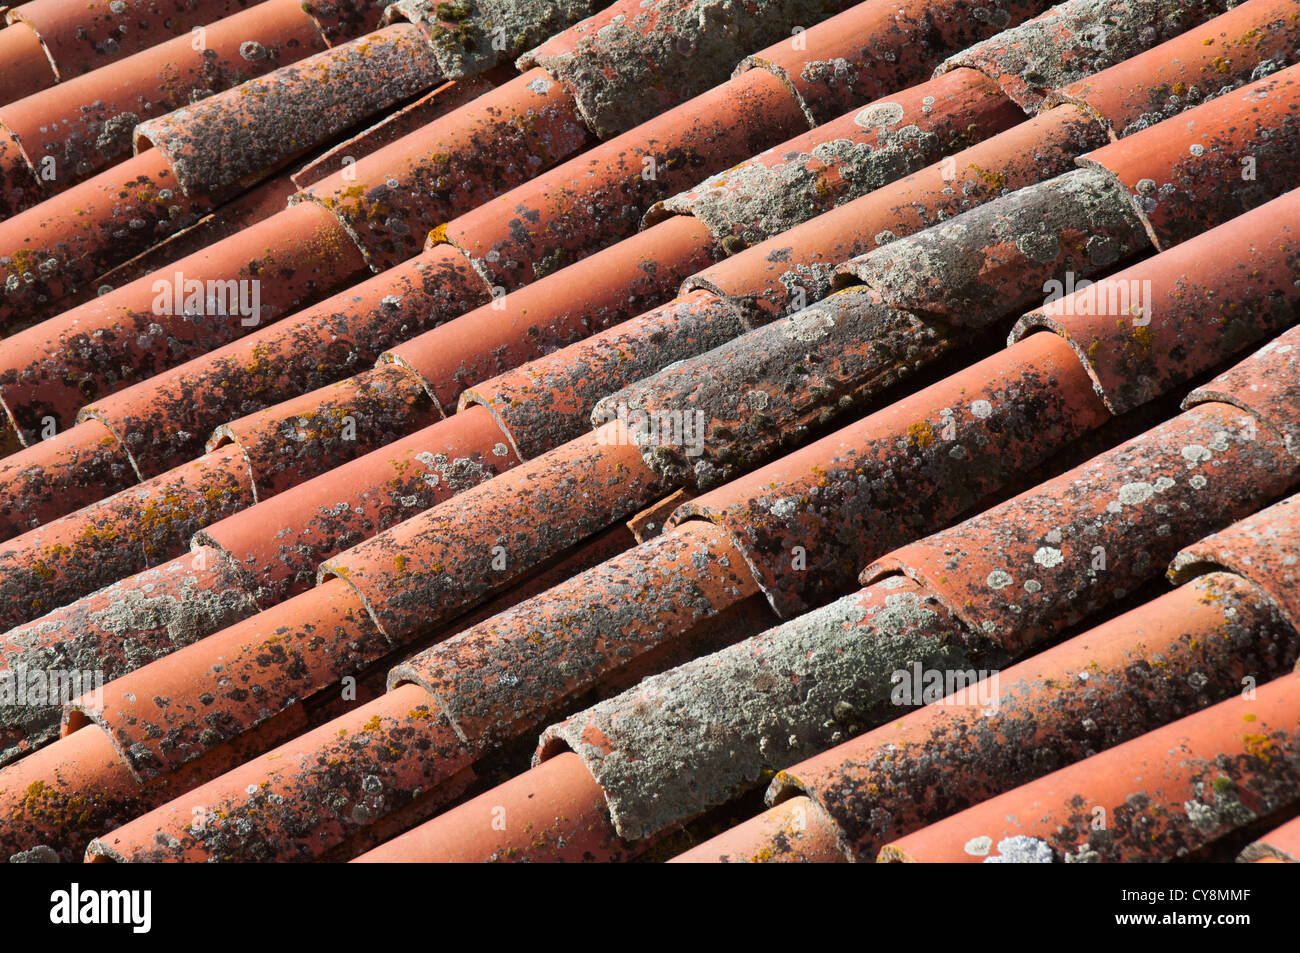 roof with old stains on the tiles, - Stock Image